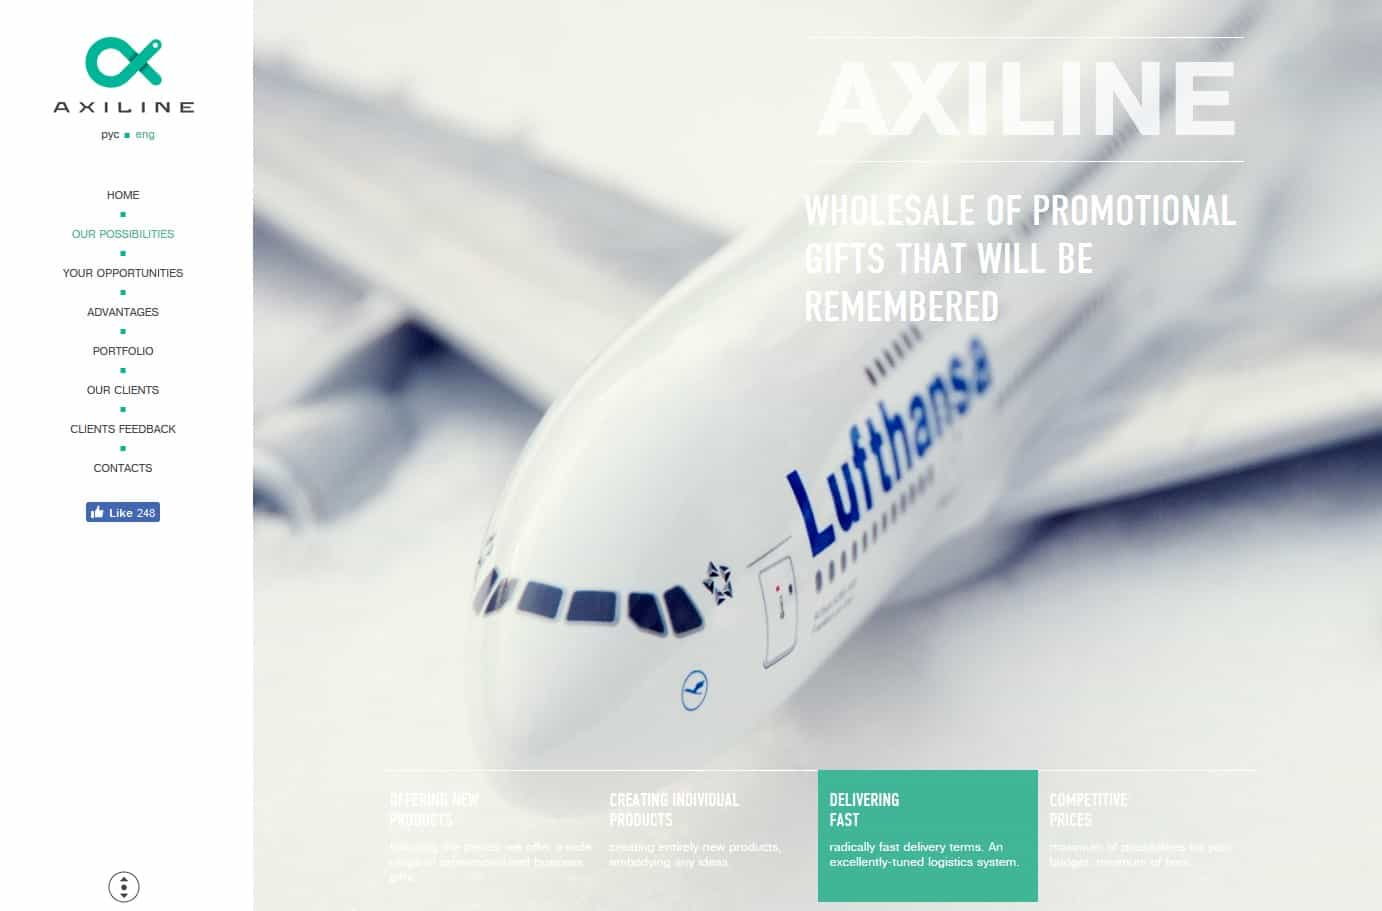 axiline-website